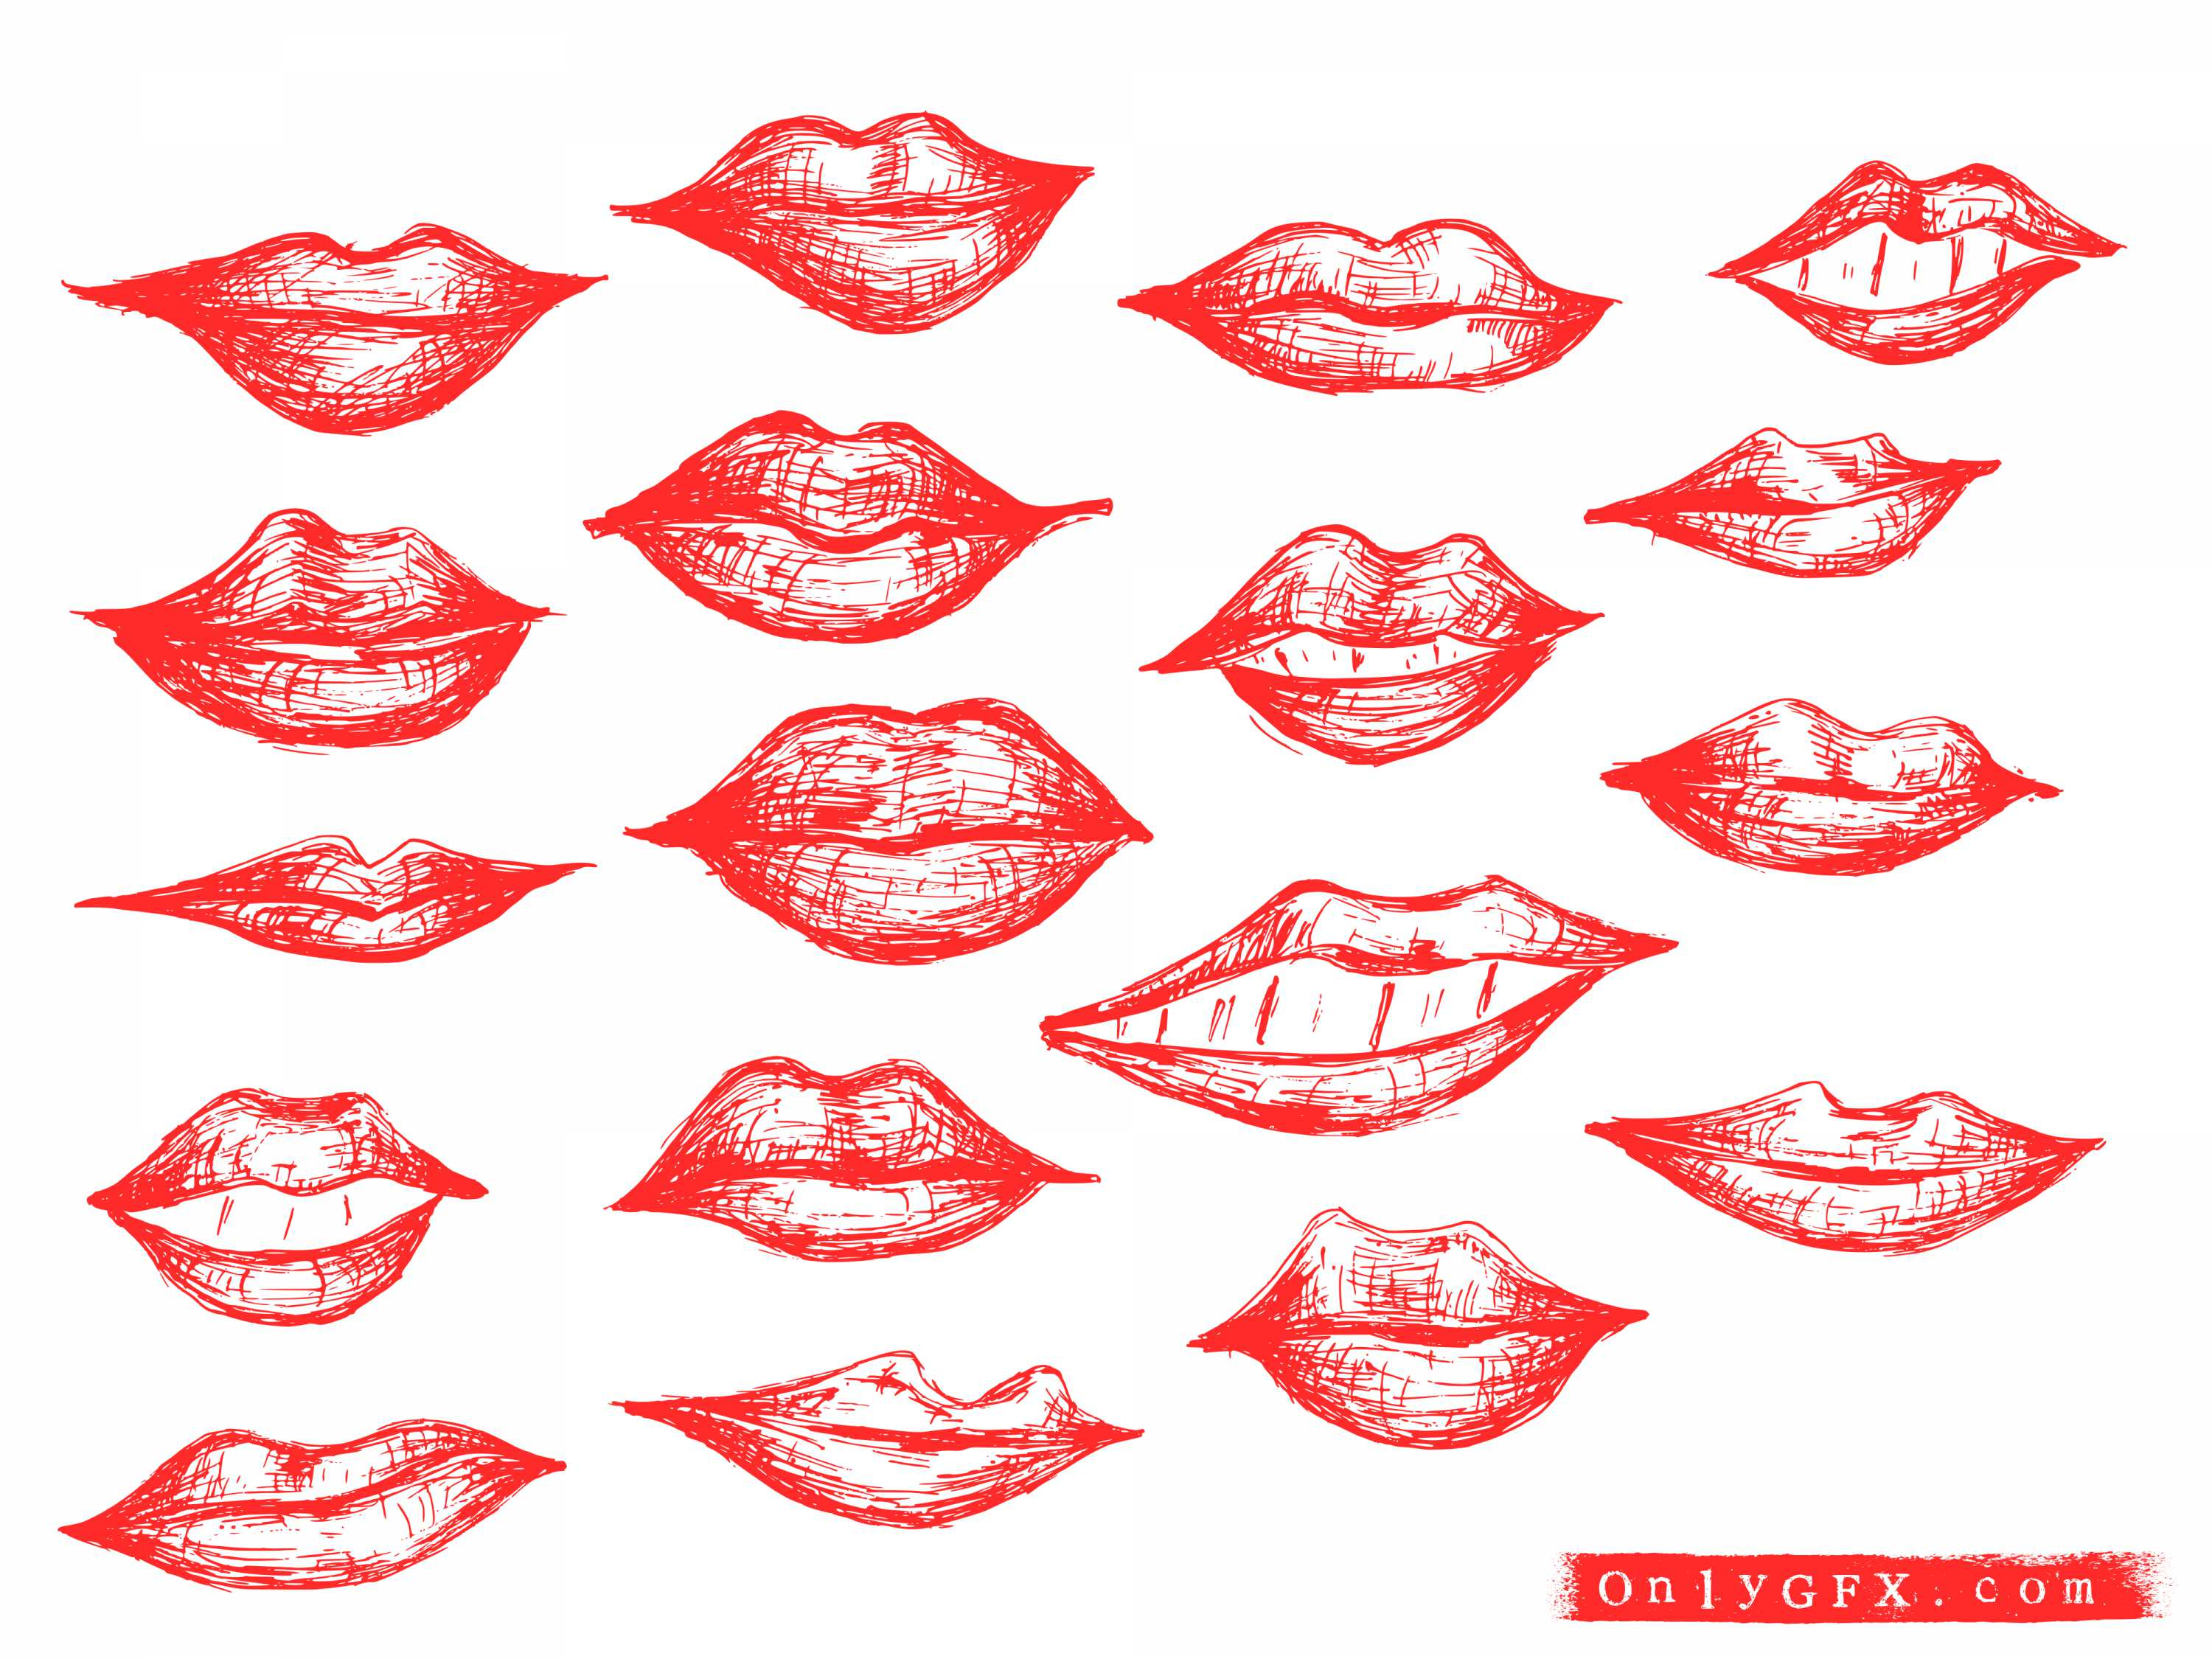 18 Hand Drawn Lips Vector (EPS, SVG) | OnlyGFX.com